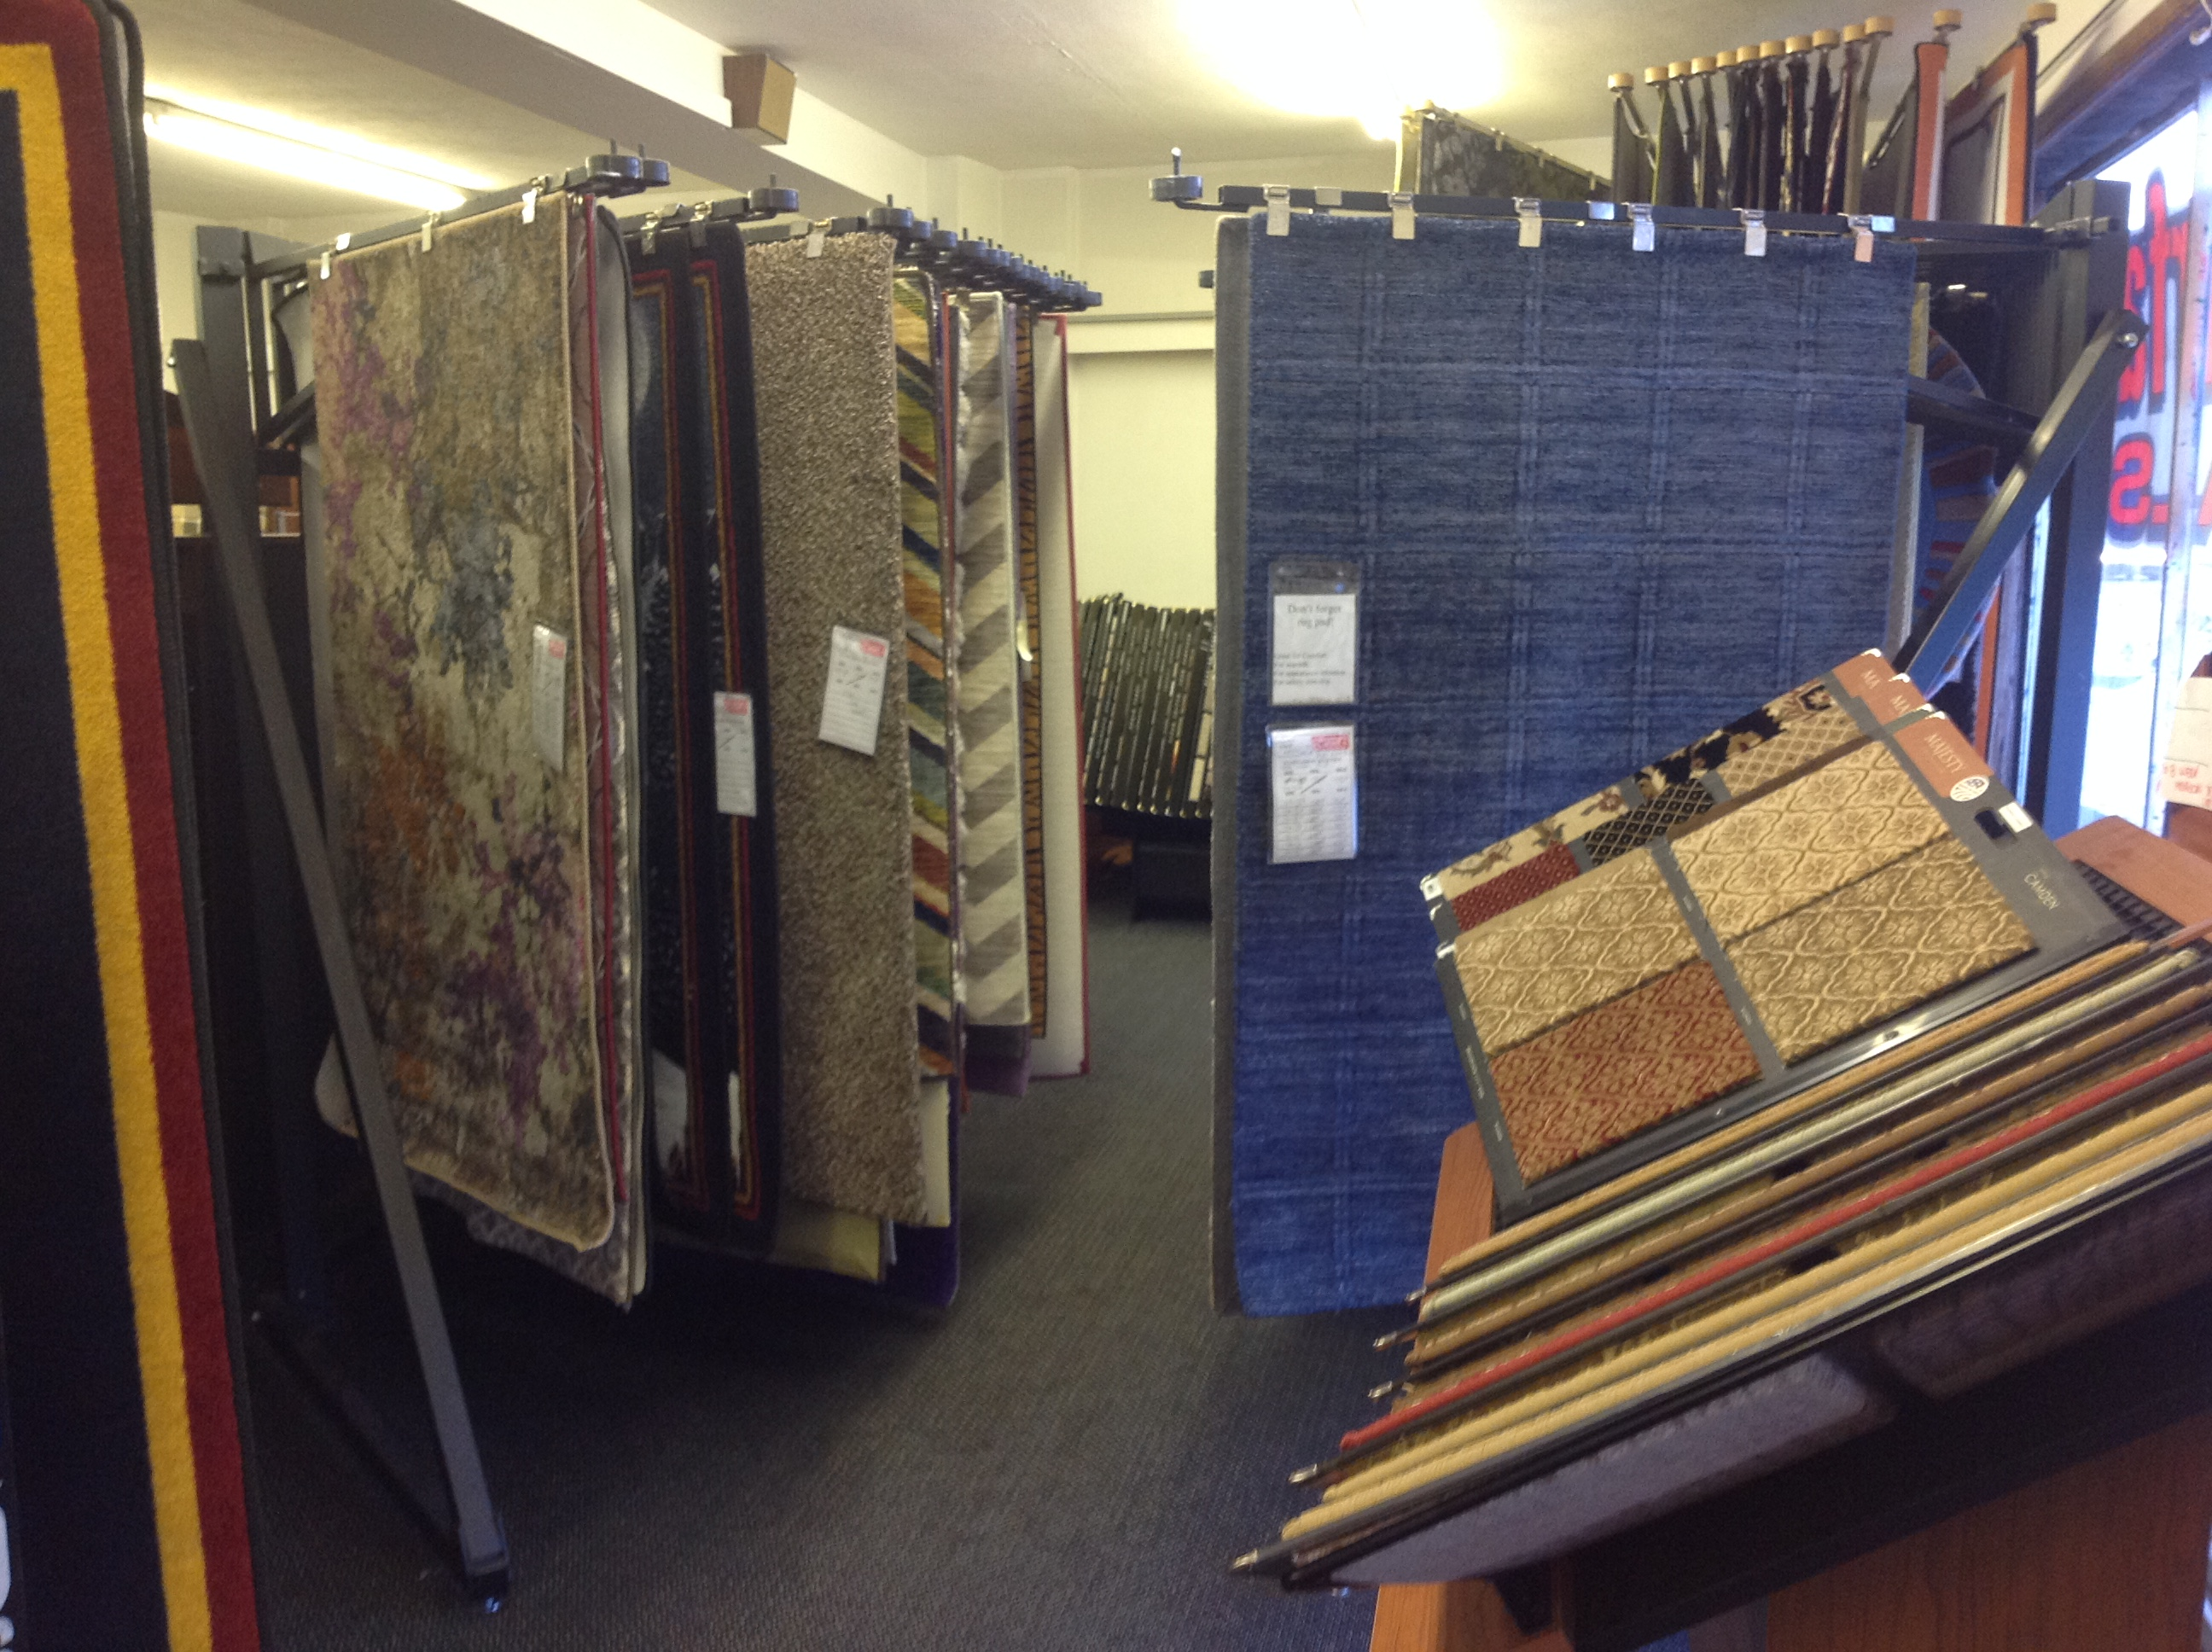 Waxman S Carpet Rugs 24601 Lorain Rd North Olmsted Oh Rug Dealers Oriental Mapquest